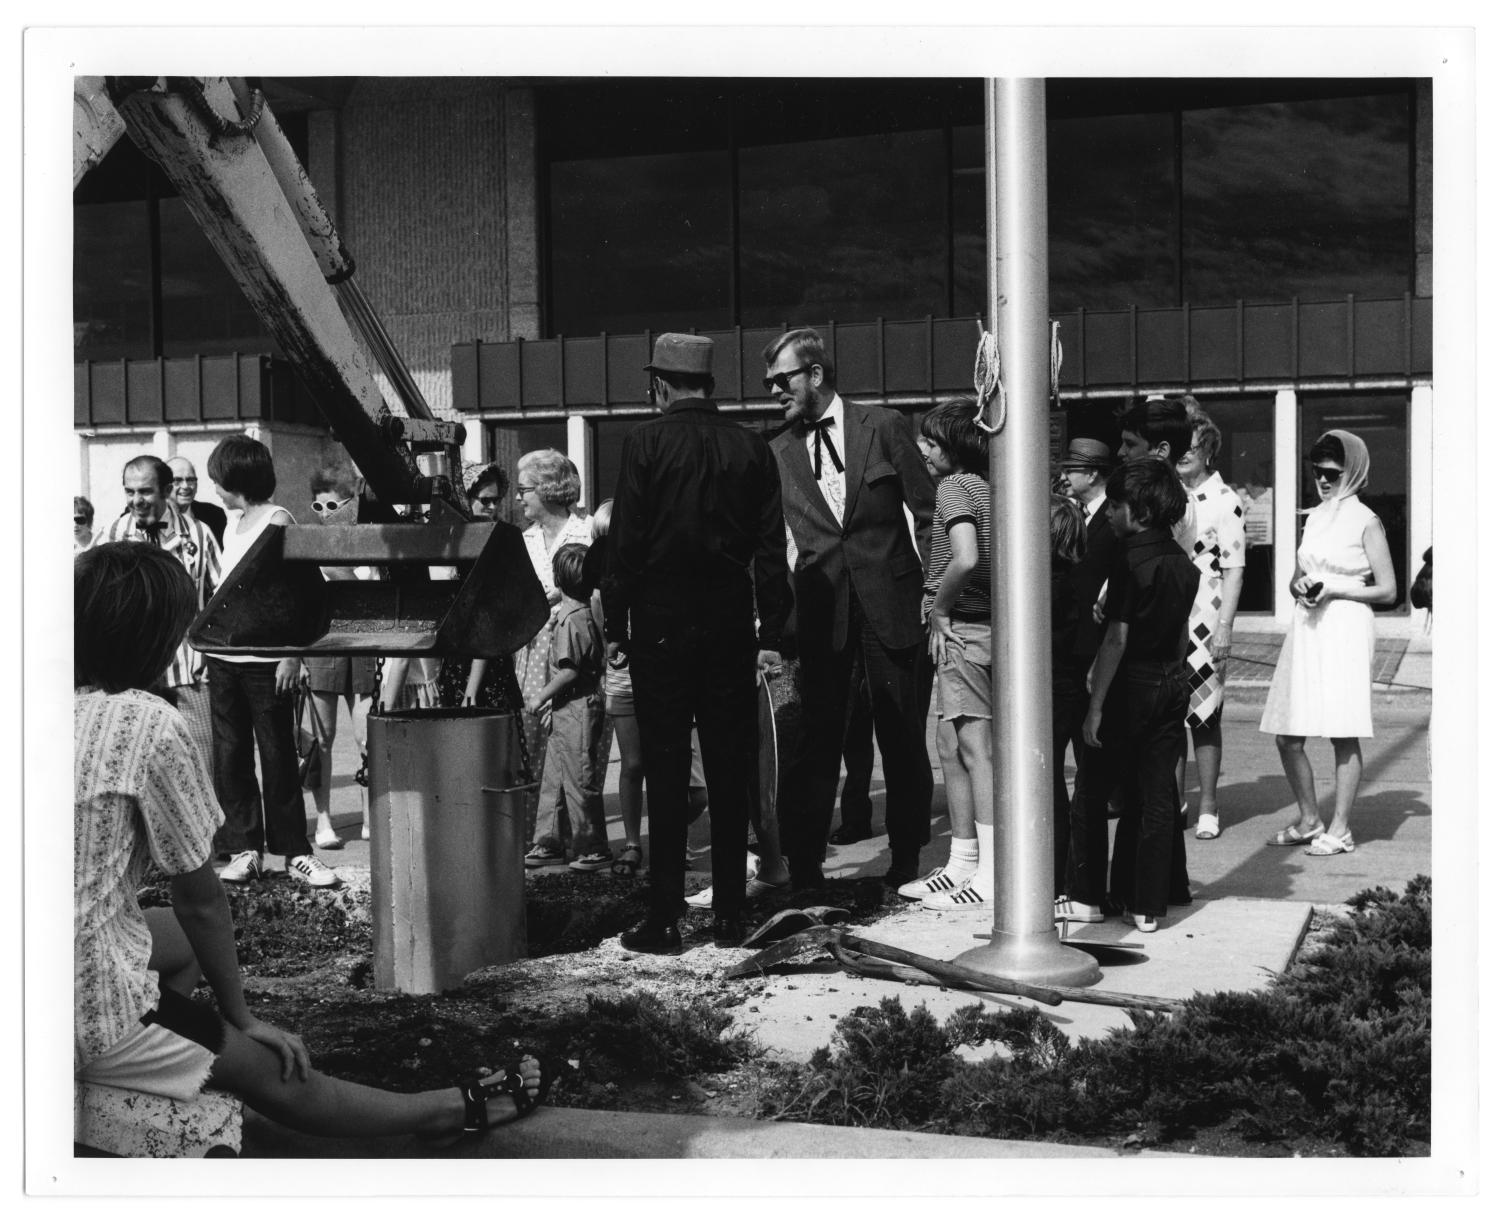 Richardson Public Library - Time Capsule, Photograph of a time capsule lowered into the ground at a centennial celebration for Richardson, Texas. A group of children, women, and men are gathered around the capsule. A piece of construction machinery is lowering it. In the background, there is a building identified as Richardson Public Library.,